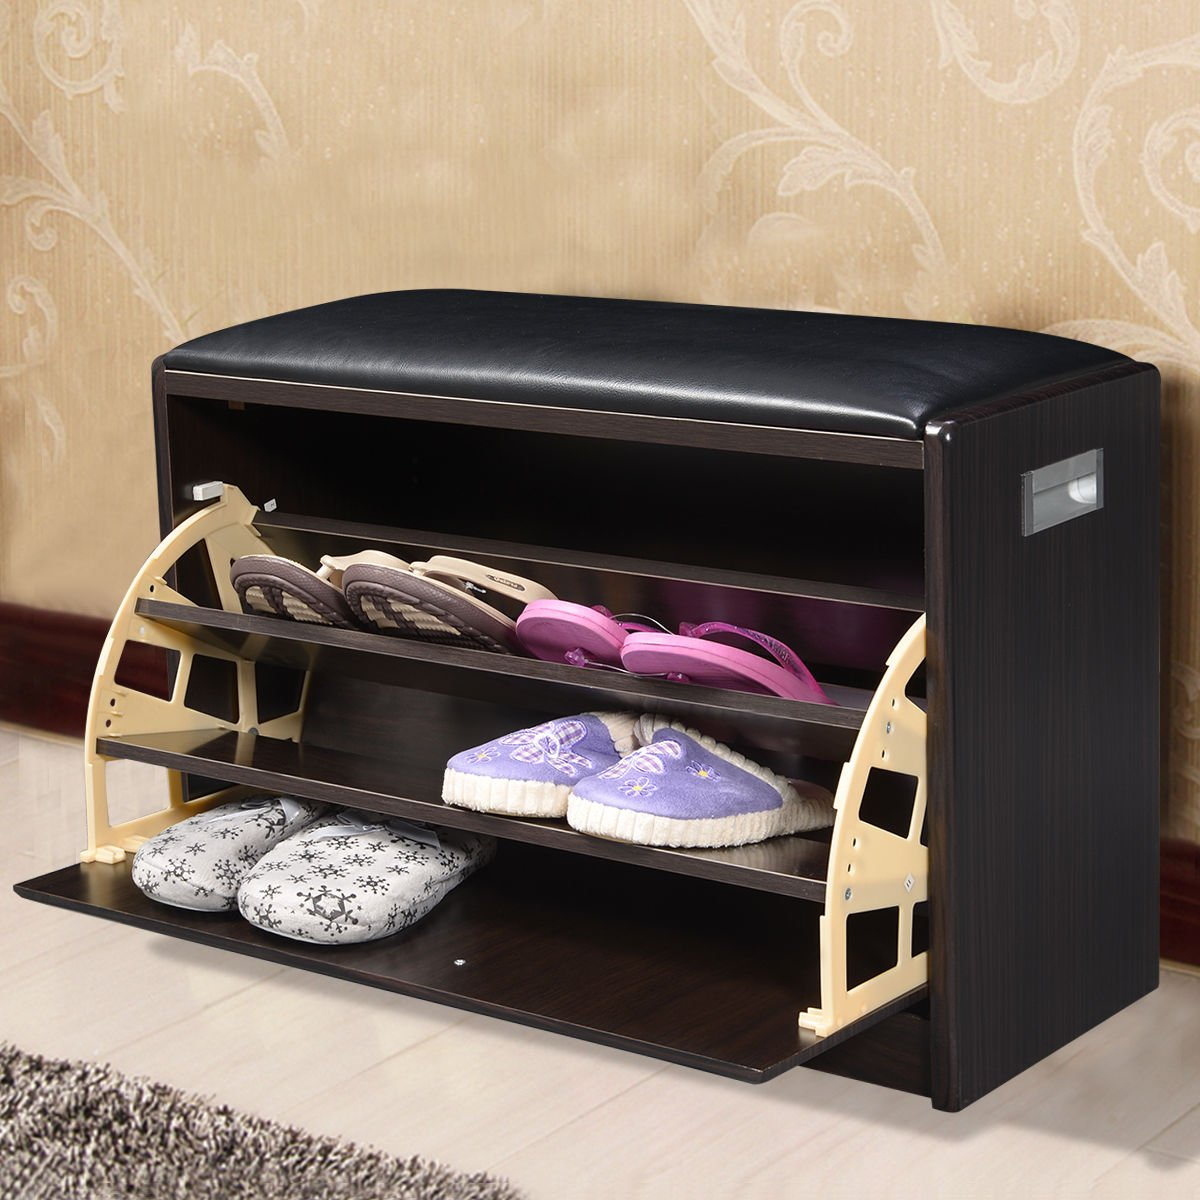 New deluxe shoe storage cabinet closet wooden ottoman bench seat rack - Mascarello Wooden Shoe Cabinet Closet Storage Rack Pu Seat Bench Ottoman Entryway Hallway Amazon Co Uk Kitchen Home